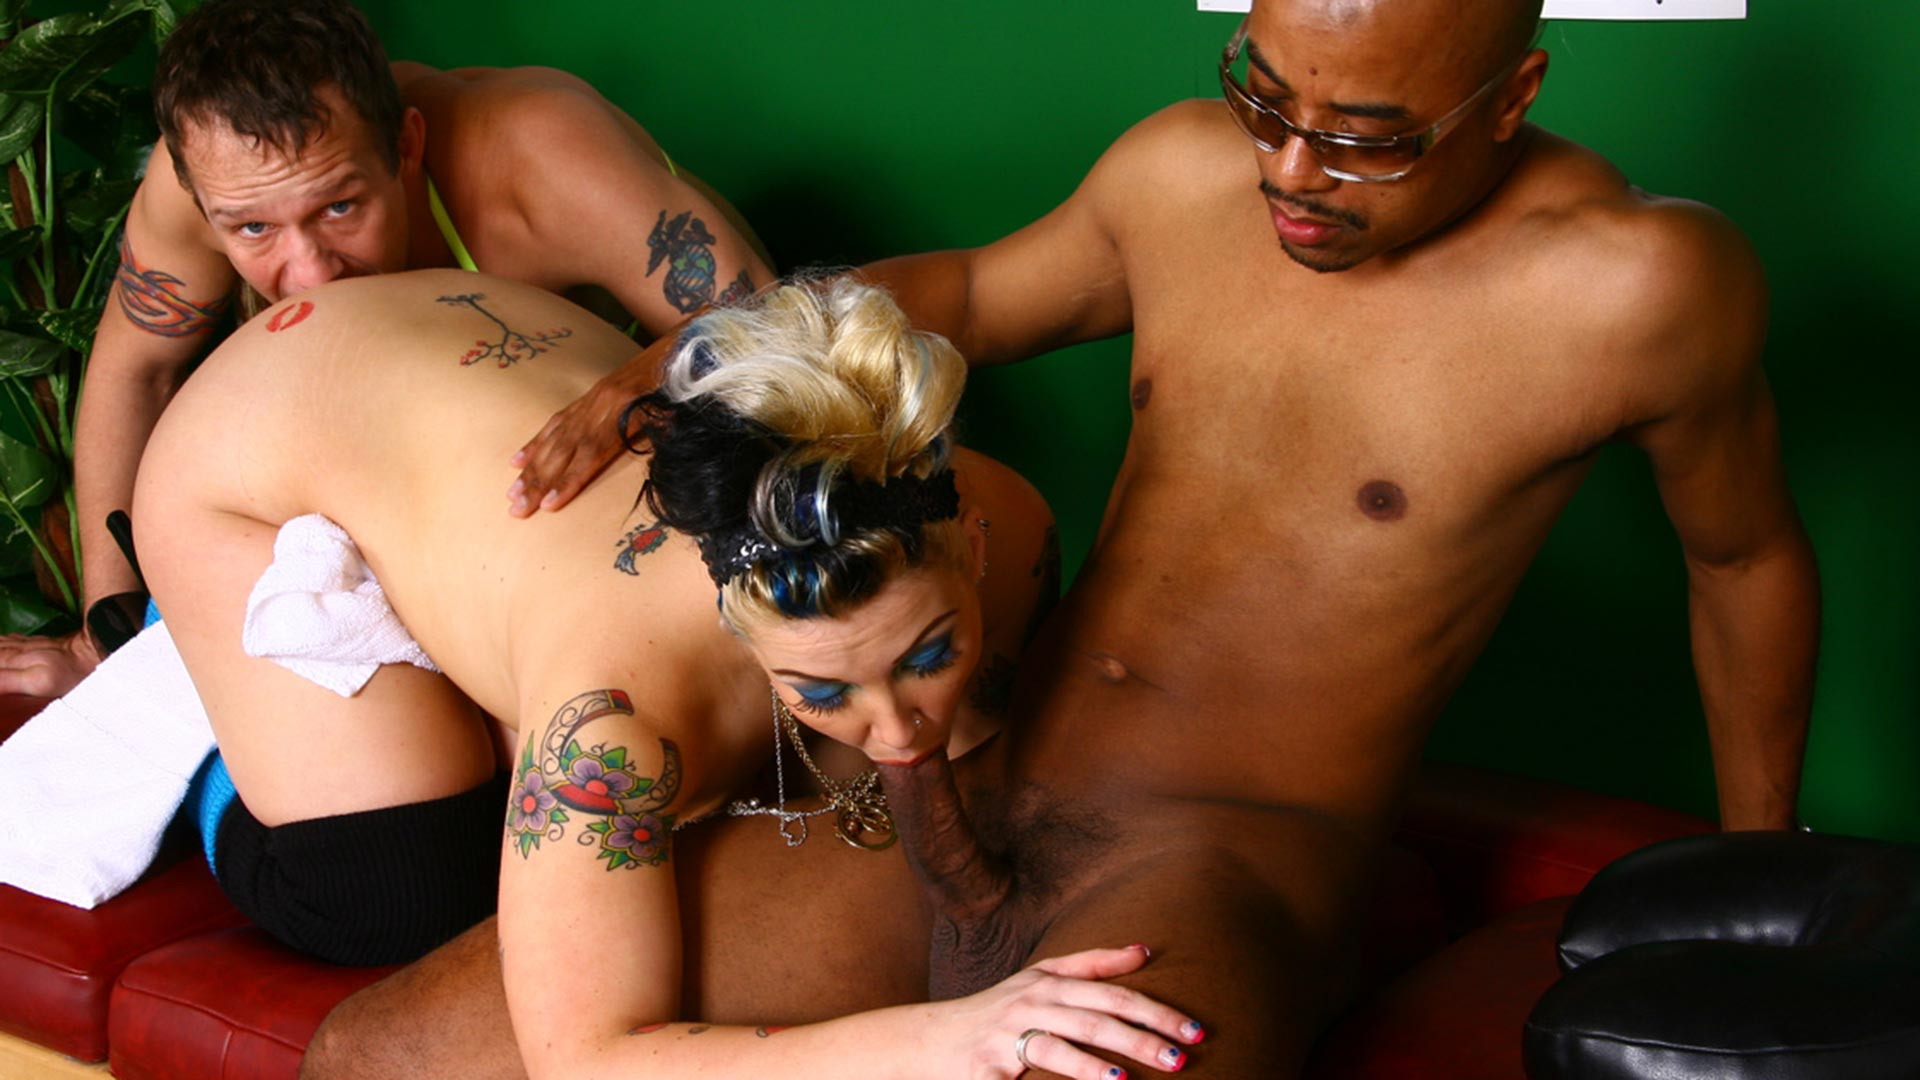 CandyMonroe Broc Adams Interracial Porn